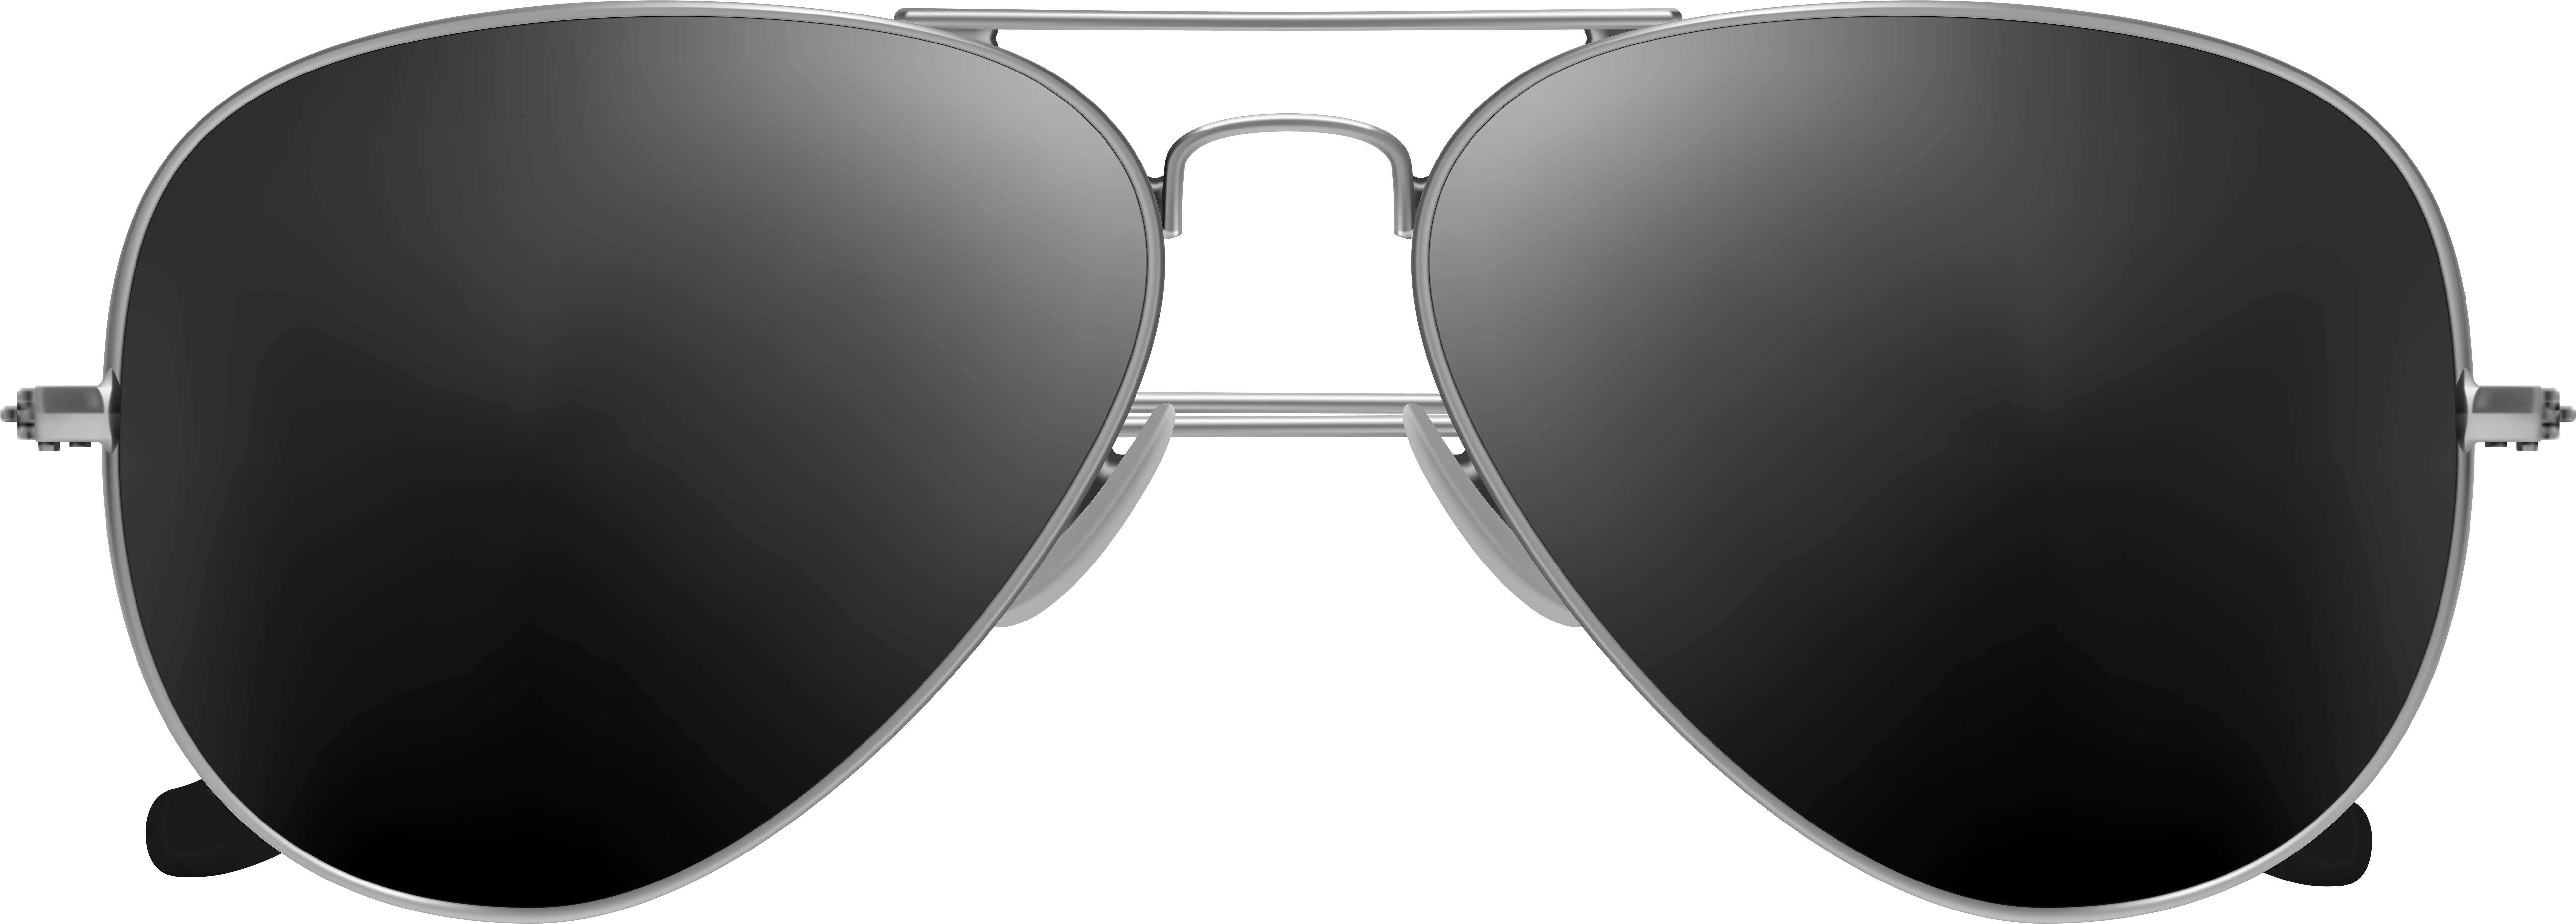 Circle sunglasses png. Download transparent background aviator